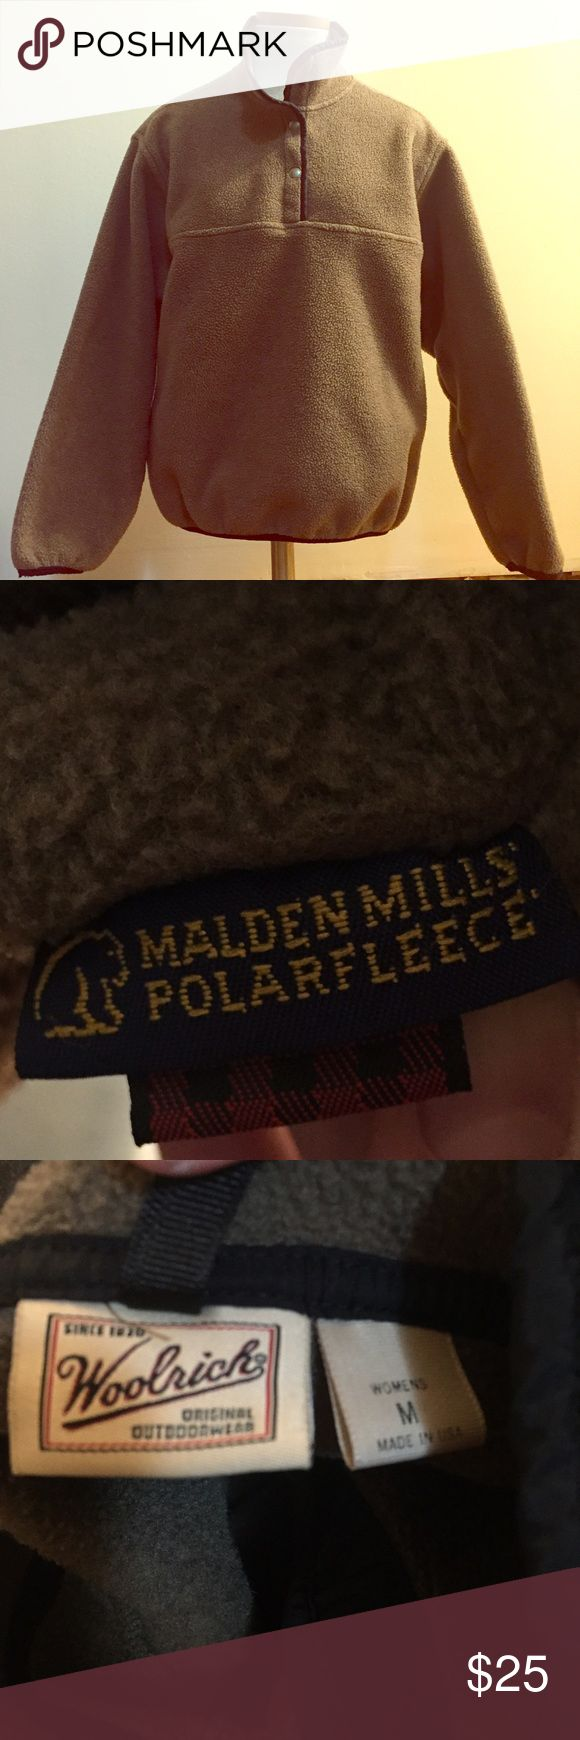 Woolrich Brown Snap Malden Mills Polar Fleece Woolrich Brown Snap Malden Mills Polar Fleece in size medium. Good used condition. Great warm layer for fall or winter. This would also be great for hiking. 100% polyester. Similar style to the Patagonia snap synchilla pullover Woolrich Sweaters